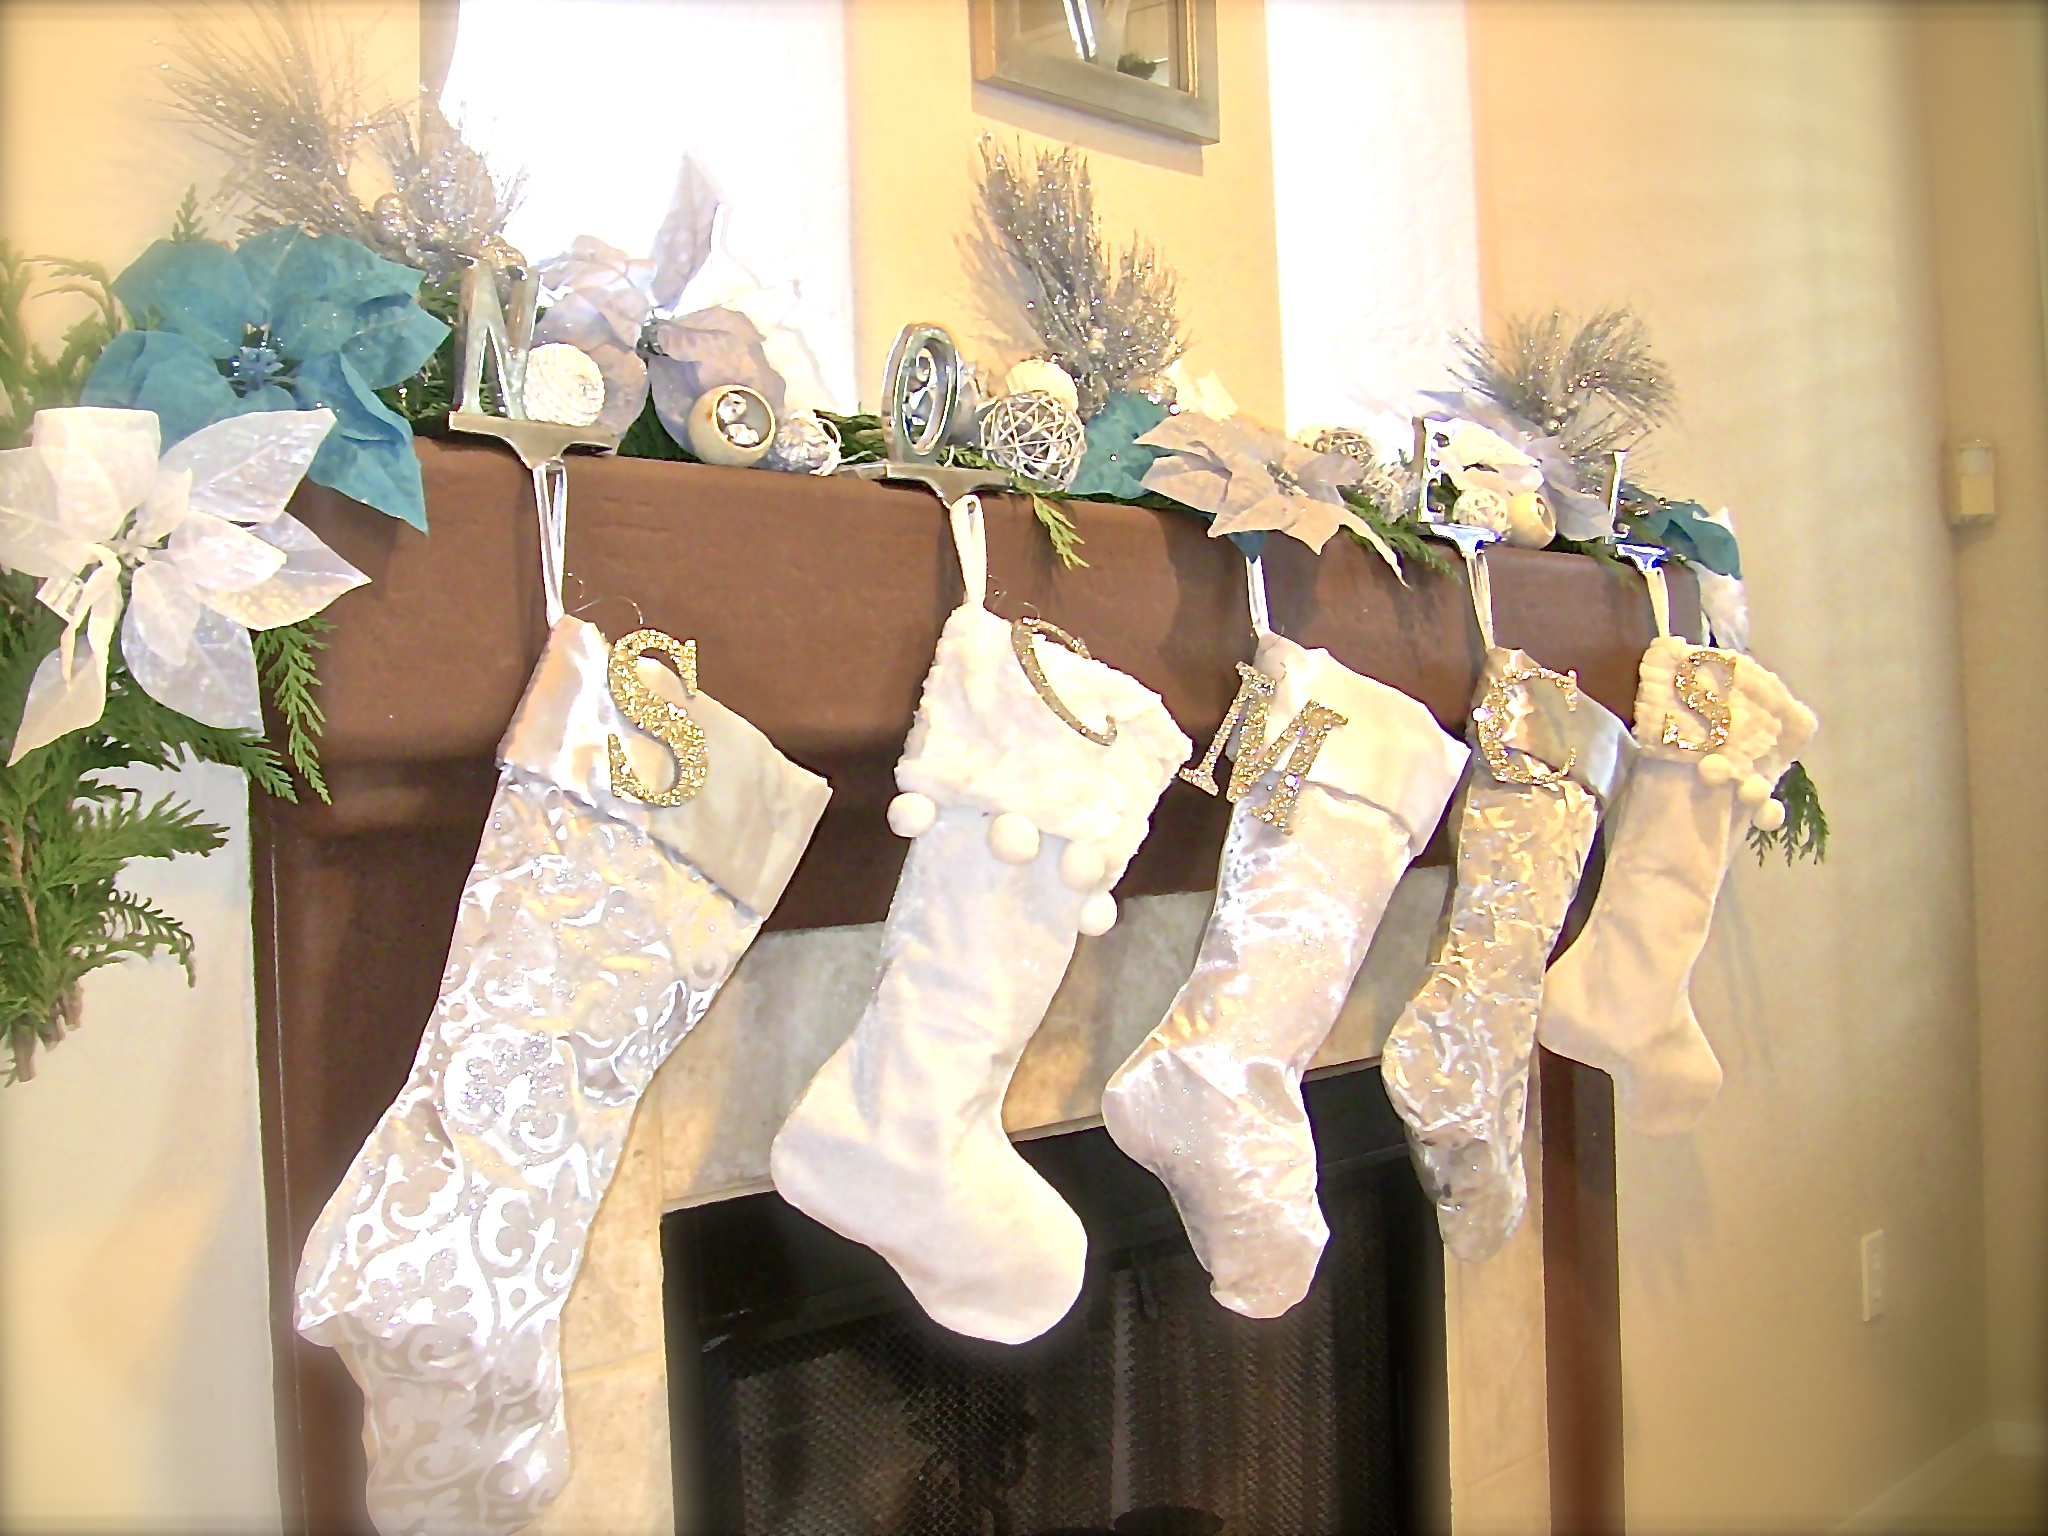 Simple stocking holder for interior decor ideas with christmas stocking holders